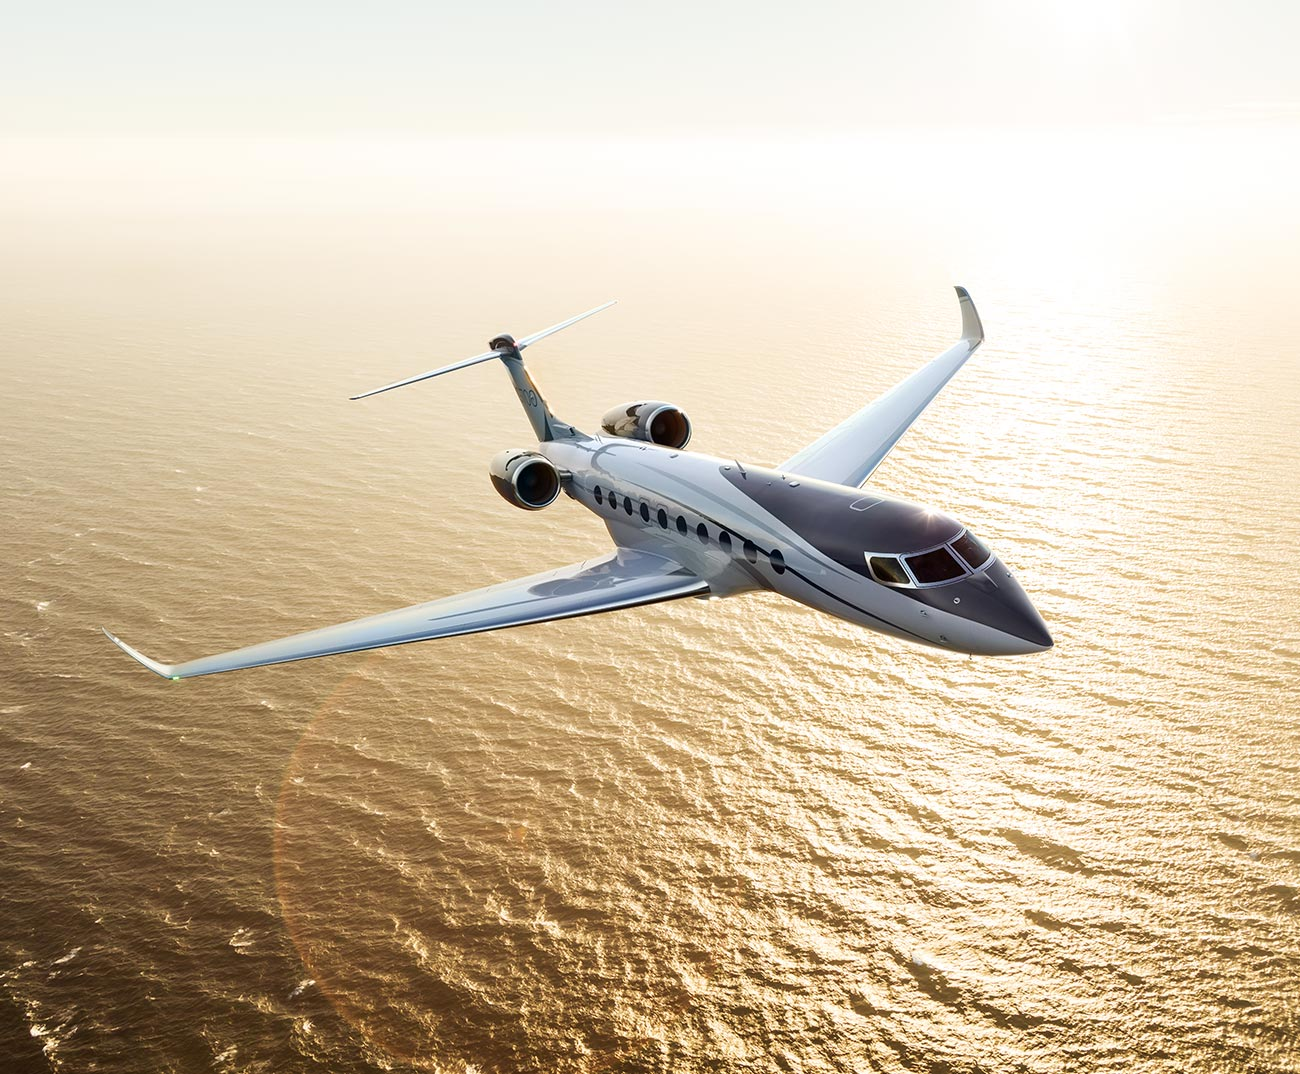 G700 flying at sunset over water